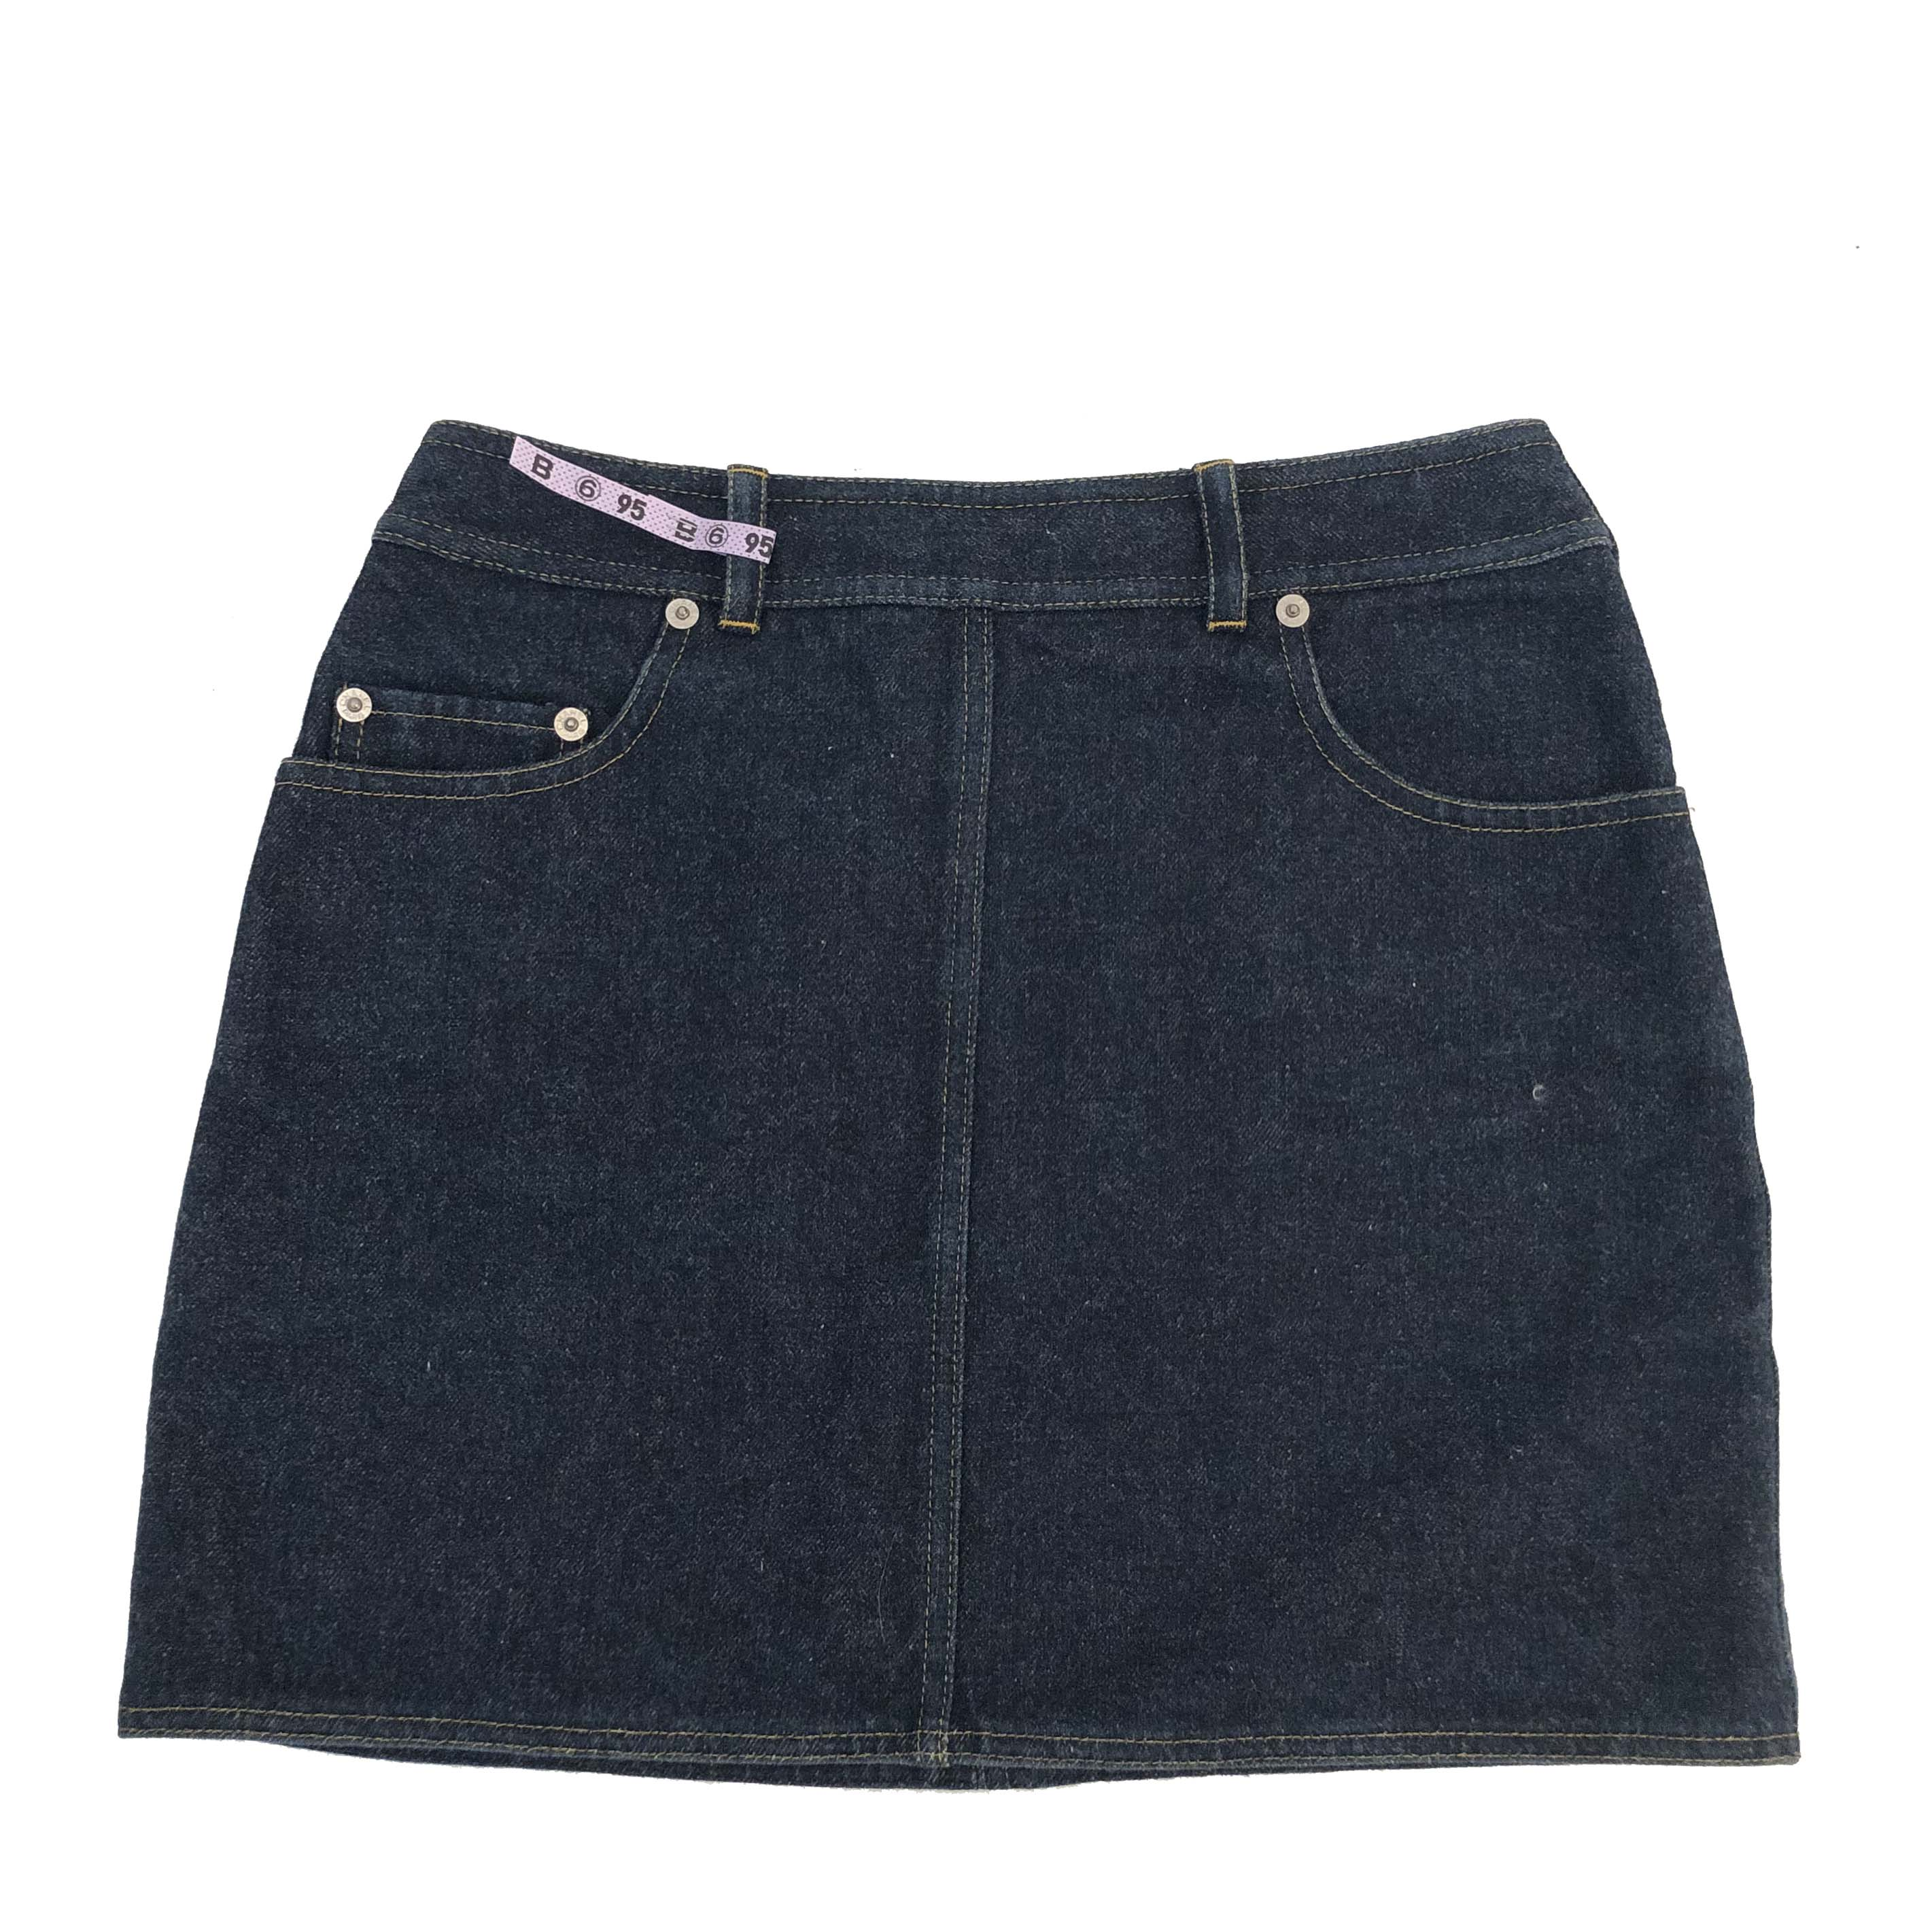 Chanel Blue Wash Denim Skirt